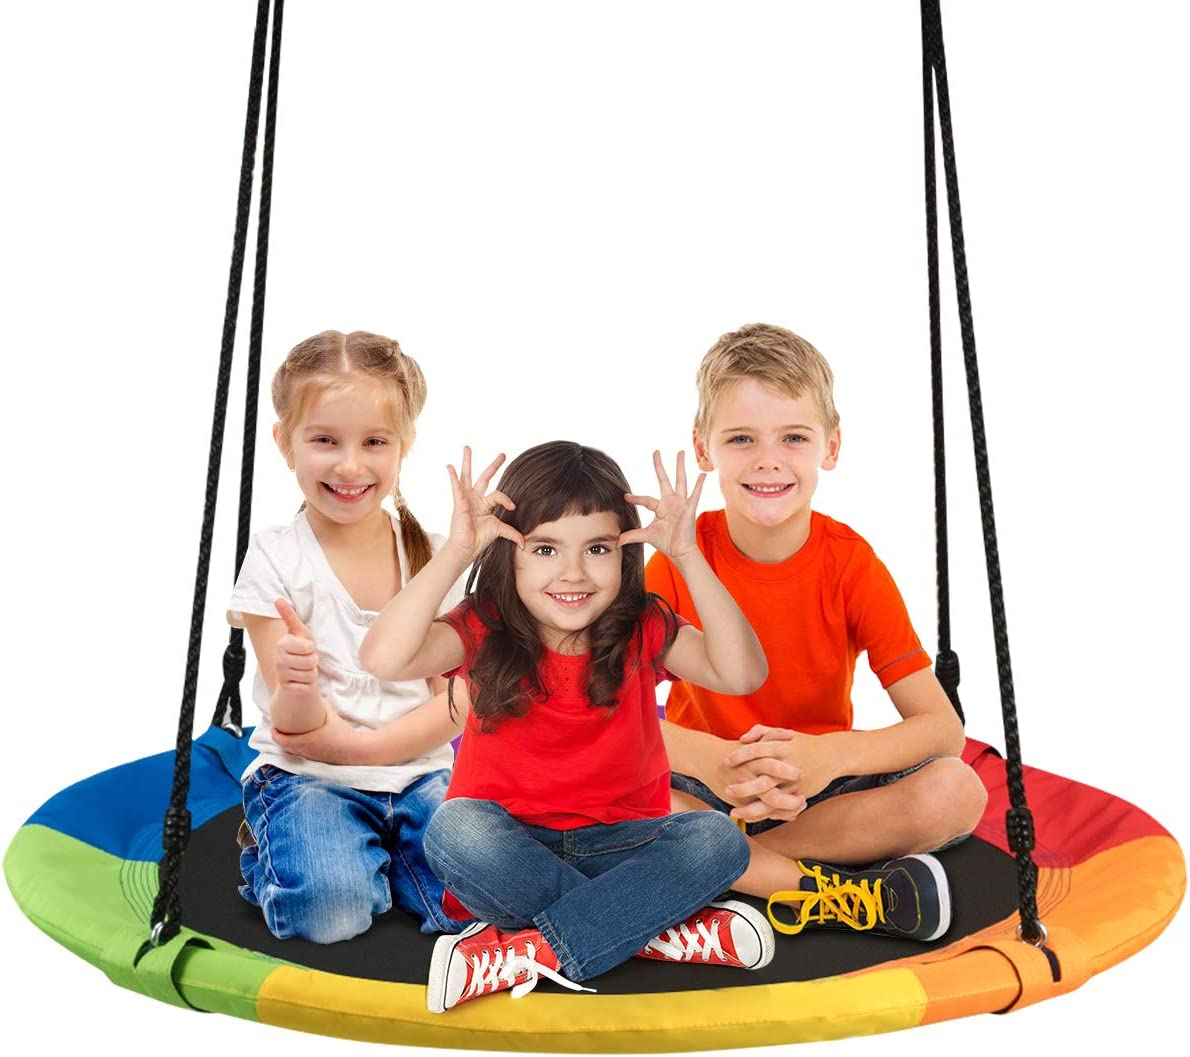 Costzon 40 Waterproof Saucer Tree Swing Set, Outdoor Round Swing Colorful – Adjustable Hanging Ropes, Safe and Sturdy Swing for Children Park Backyard Multicolor